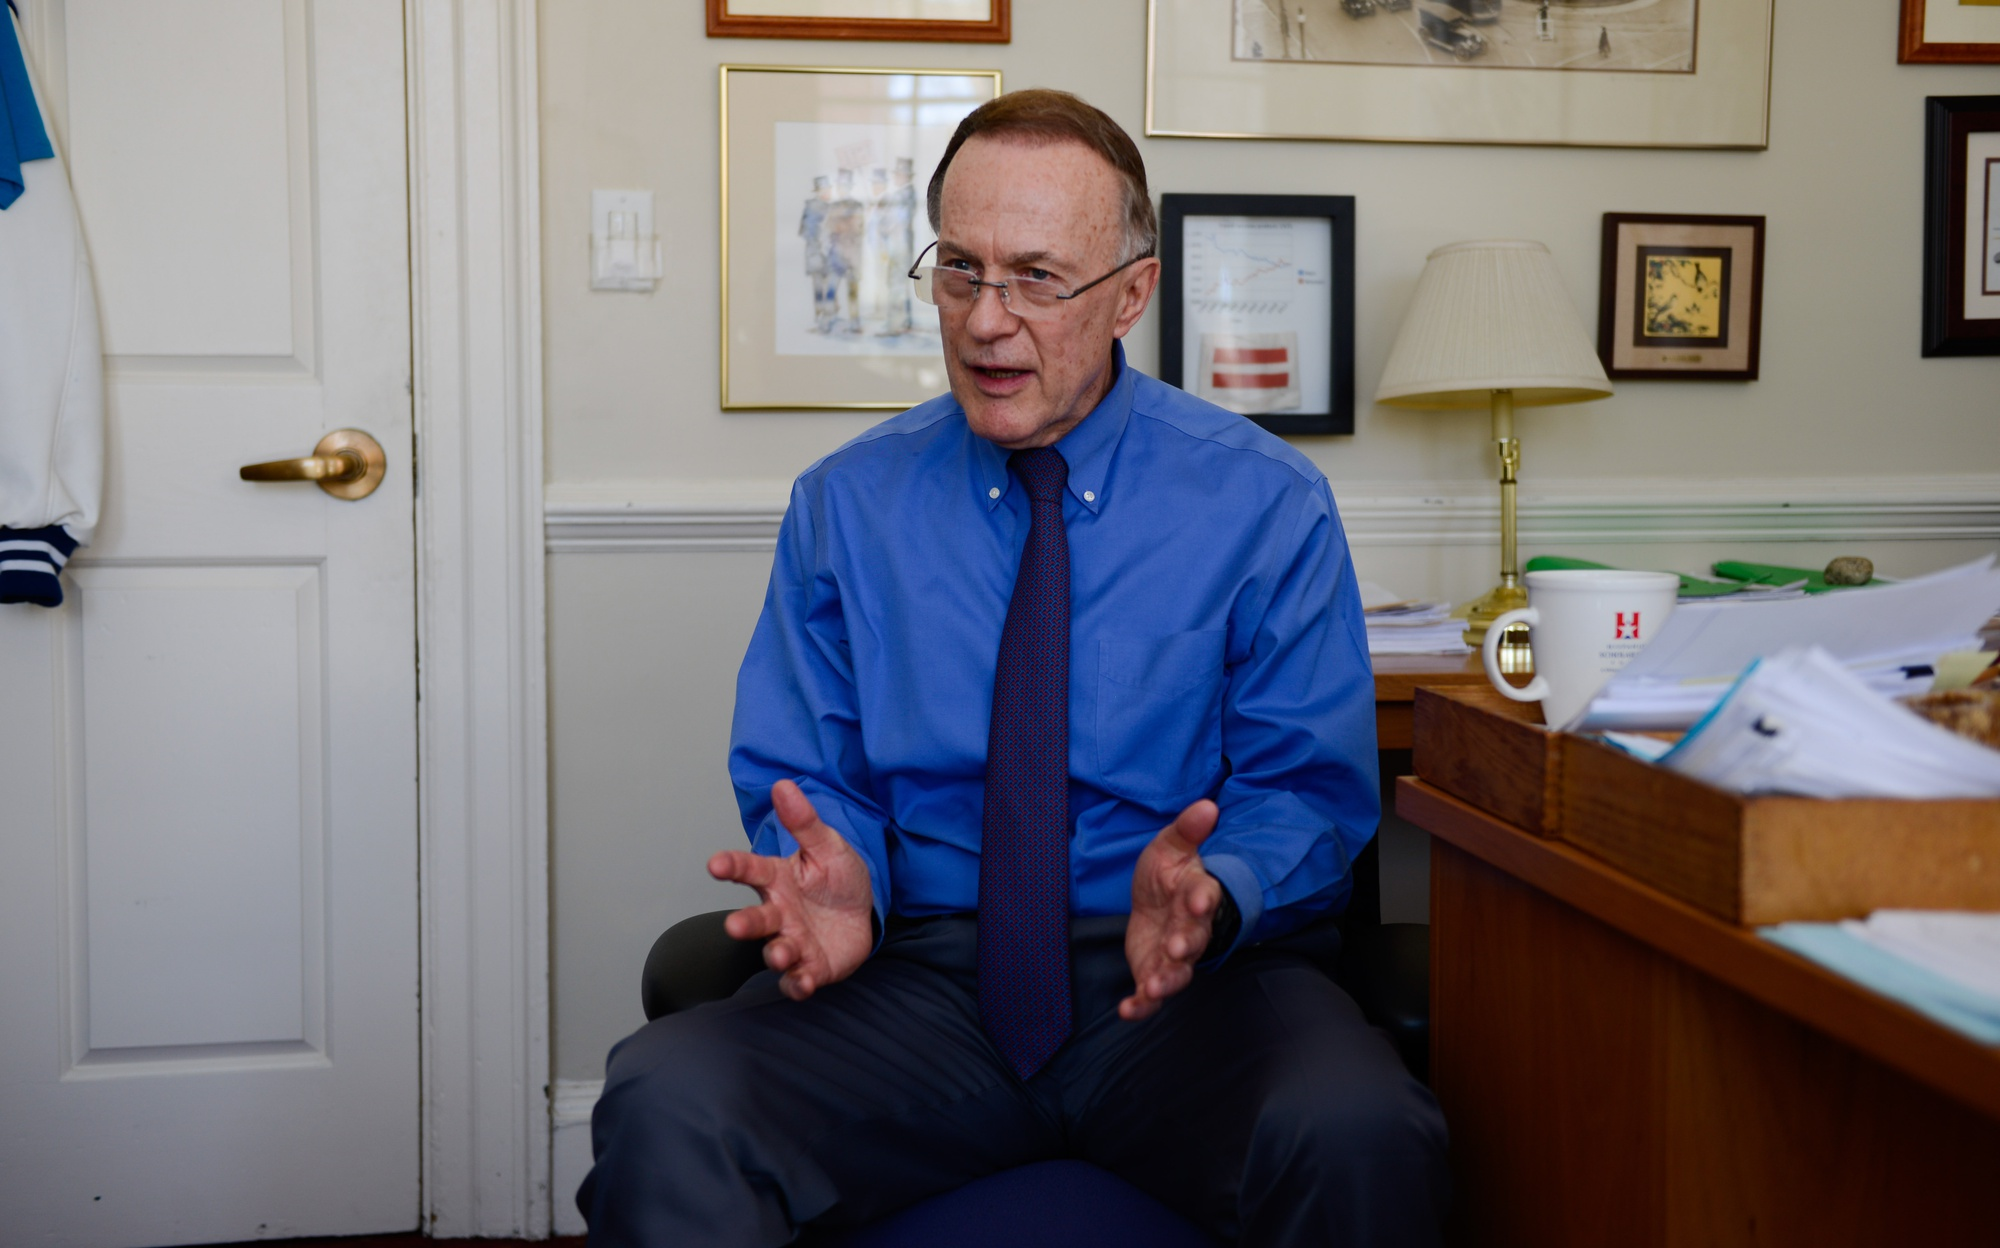 Dean of Admissions and Financial Aid William R. Fitzsimmons '67 has speculated that the Admissions Office's use of a new low-income student outreach program called Harvard College Connection may have contributed to a larger pool of applicants than in previous years.